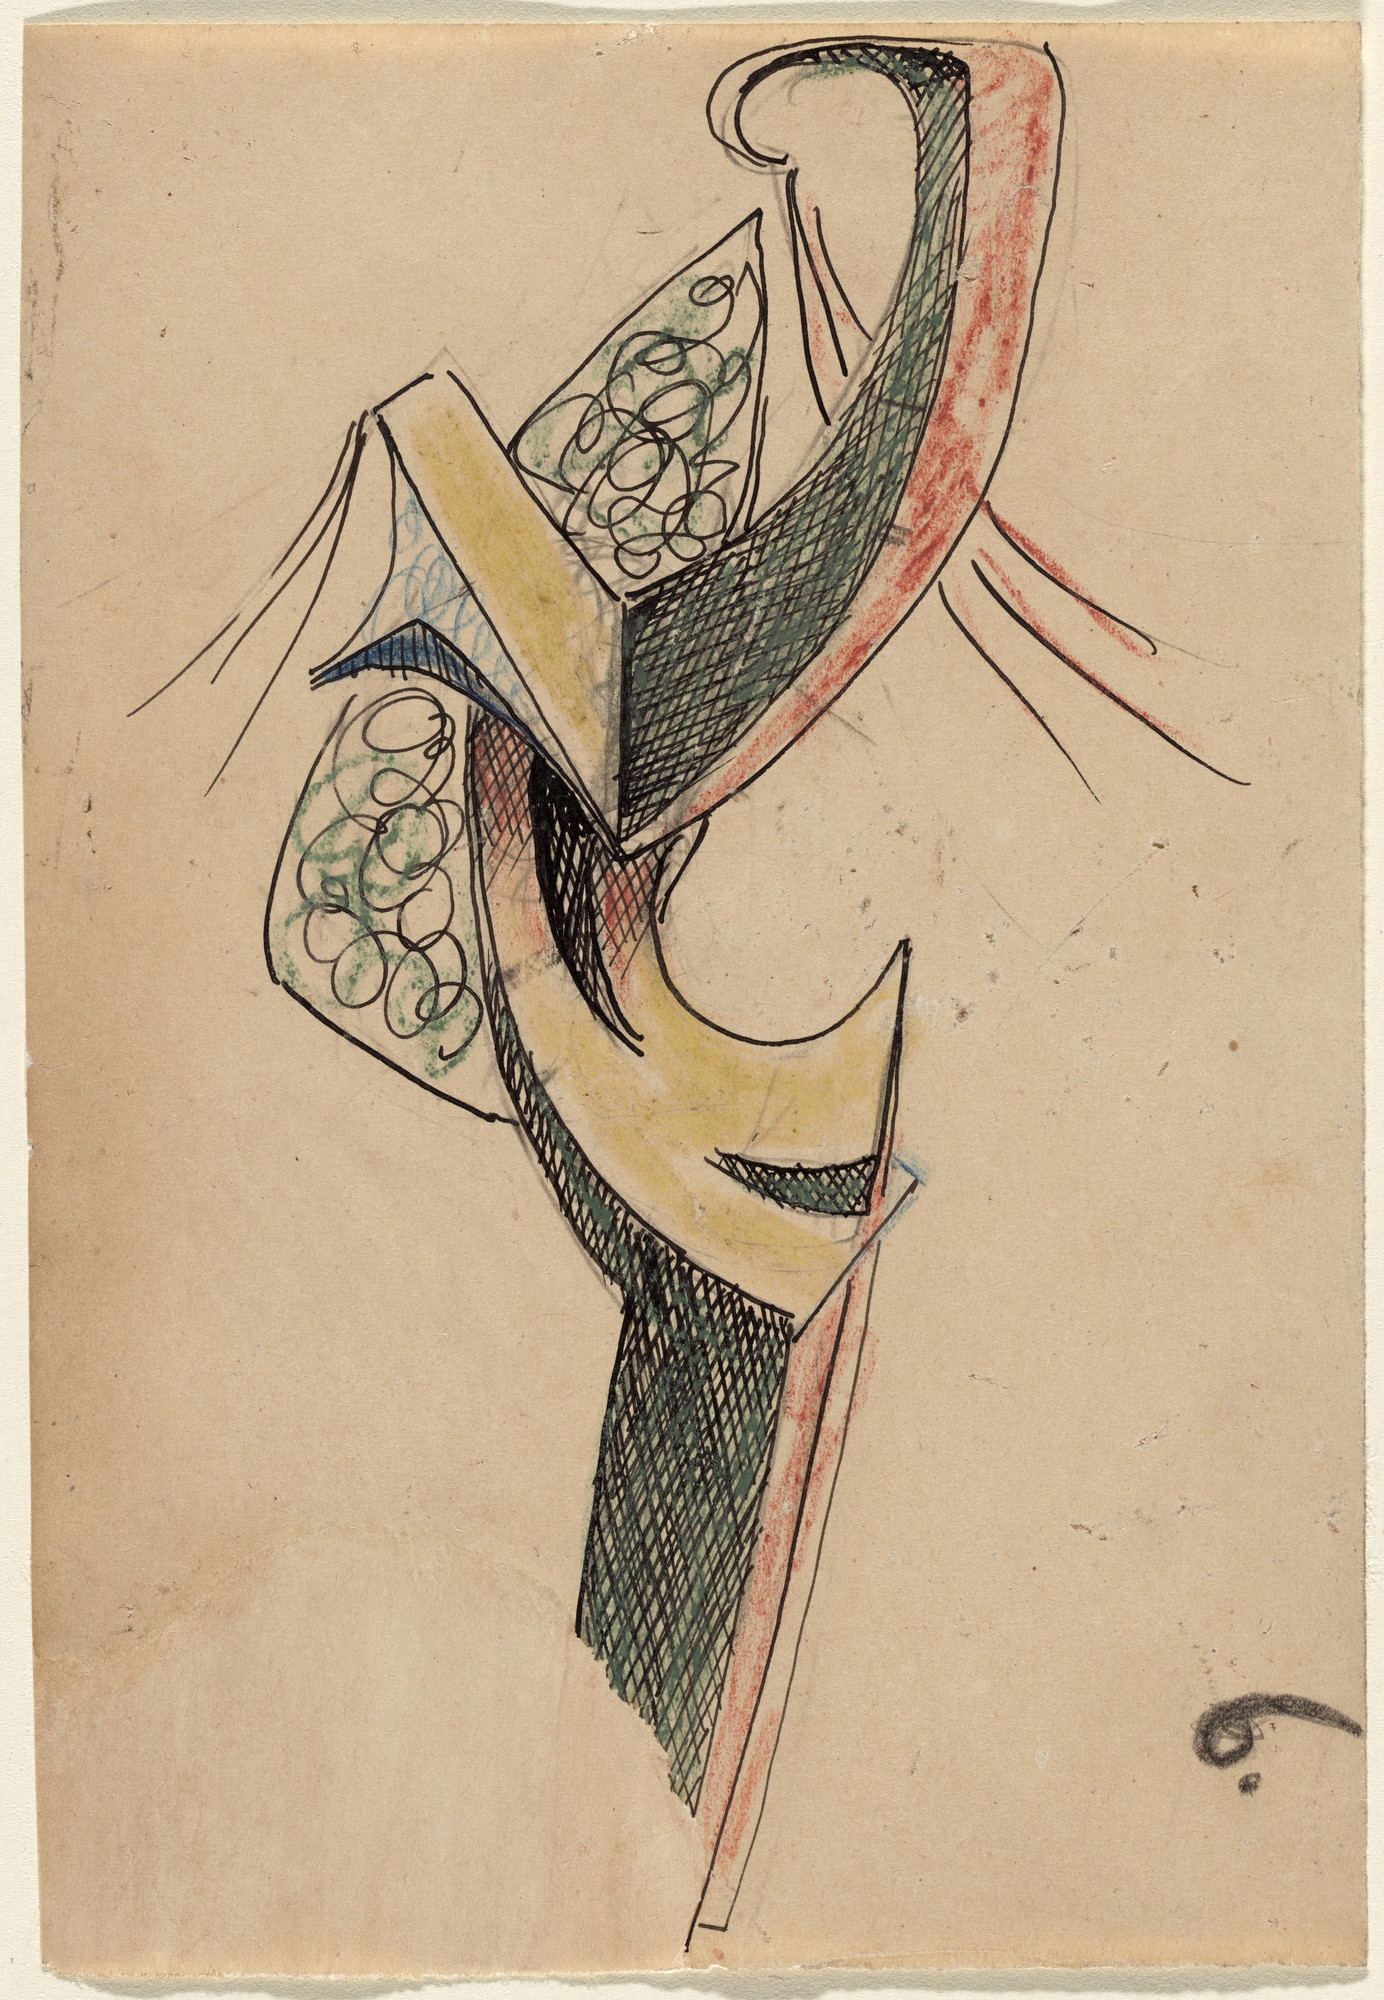 Julio González. Study for Woman Combing Her Hair. (1936)